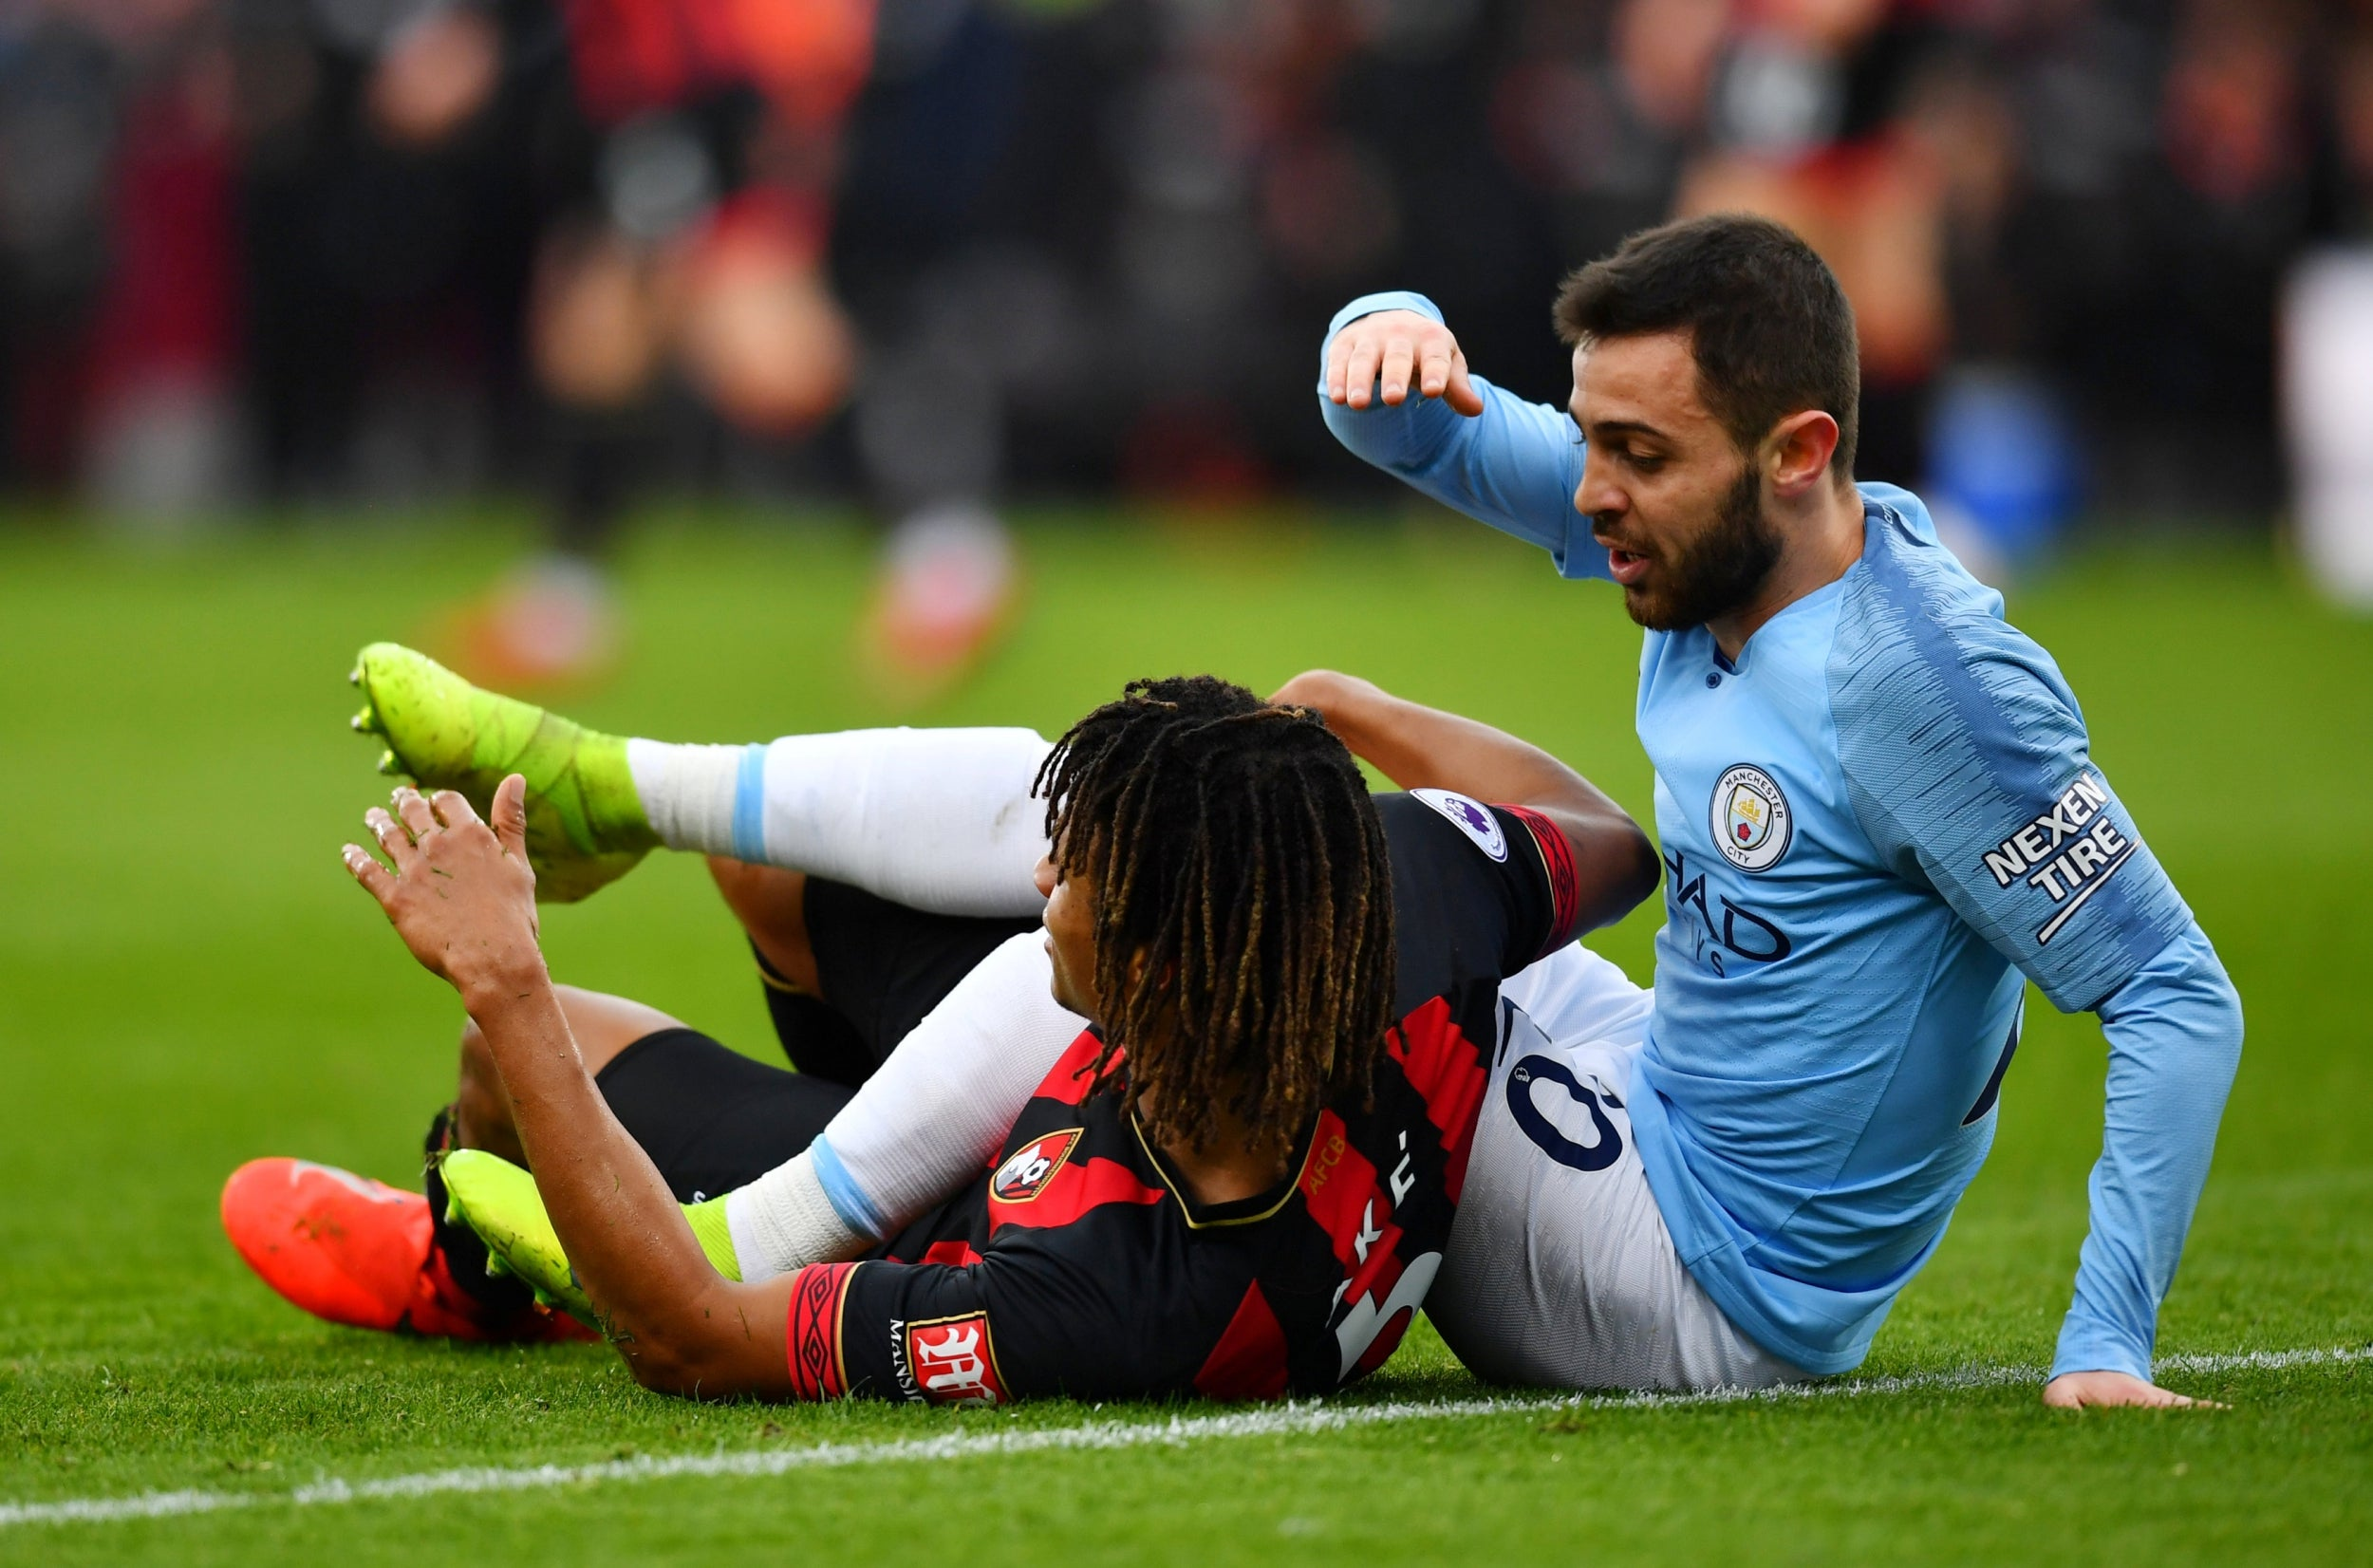 bournemouth vs man city - HD 2500×1652